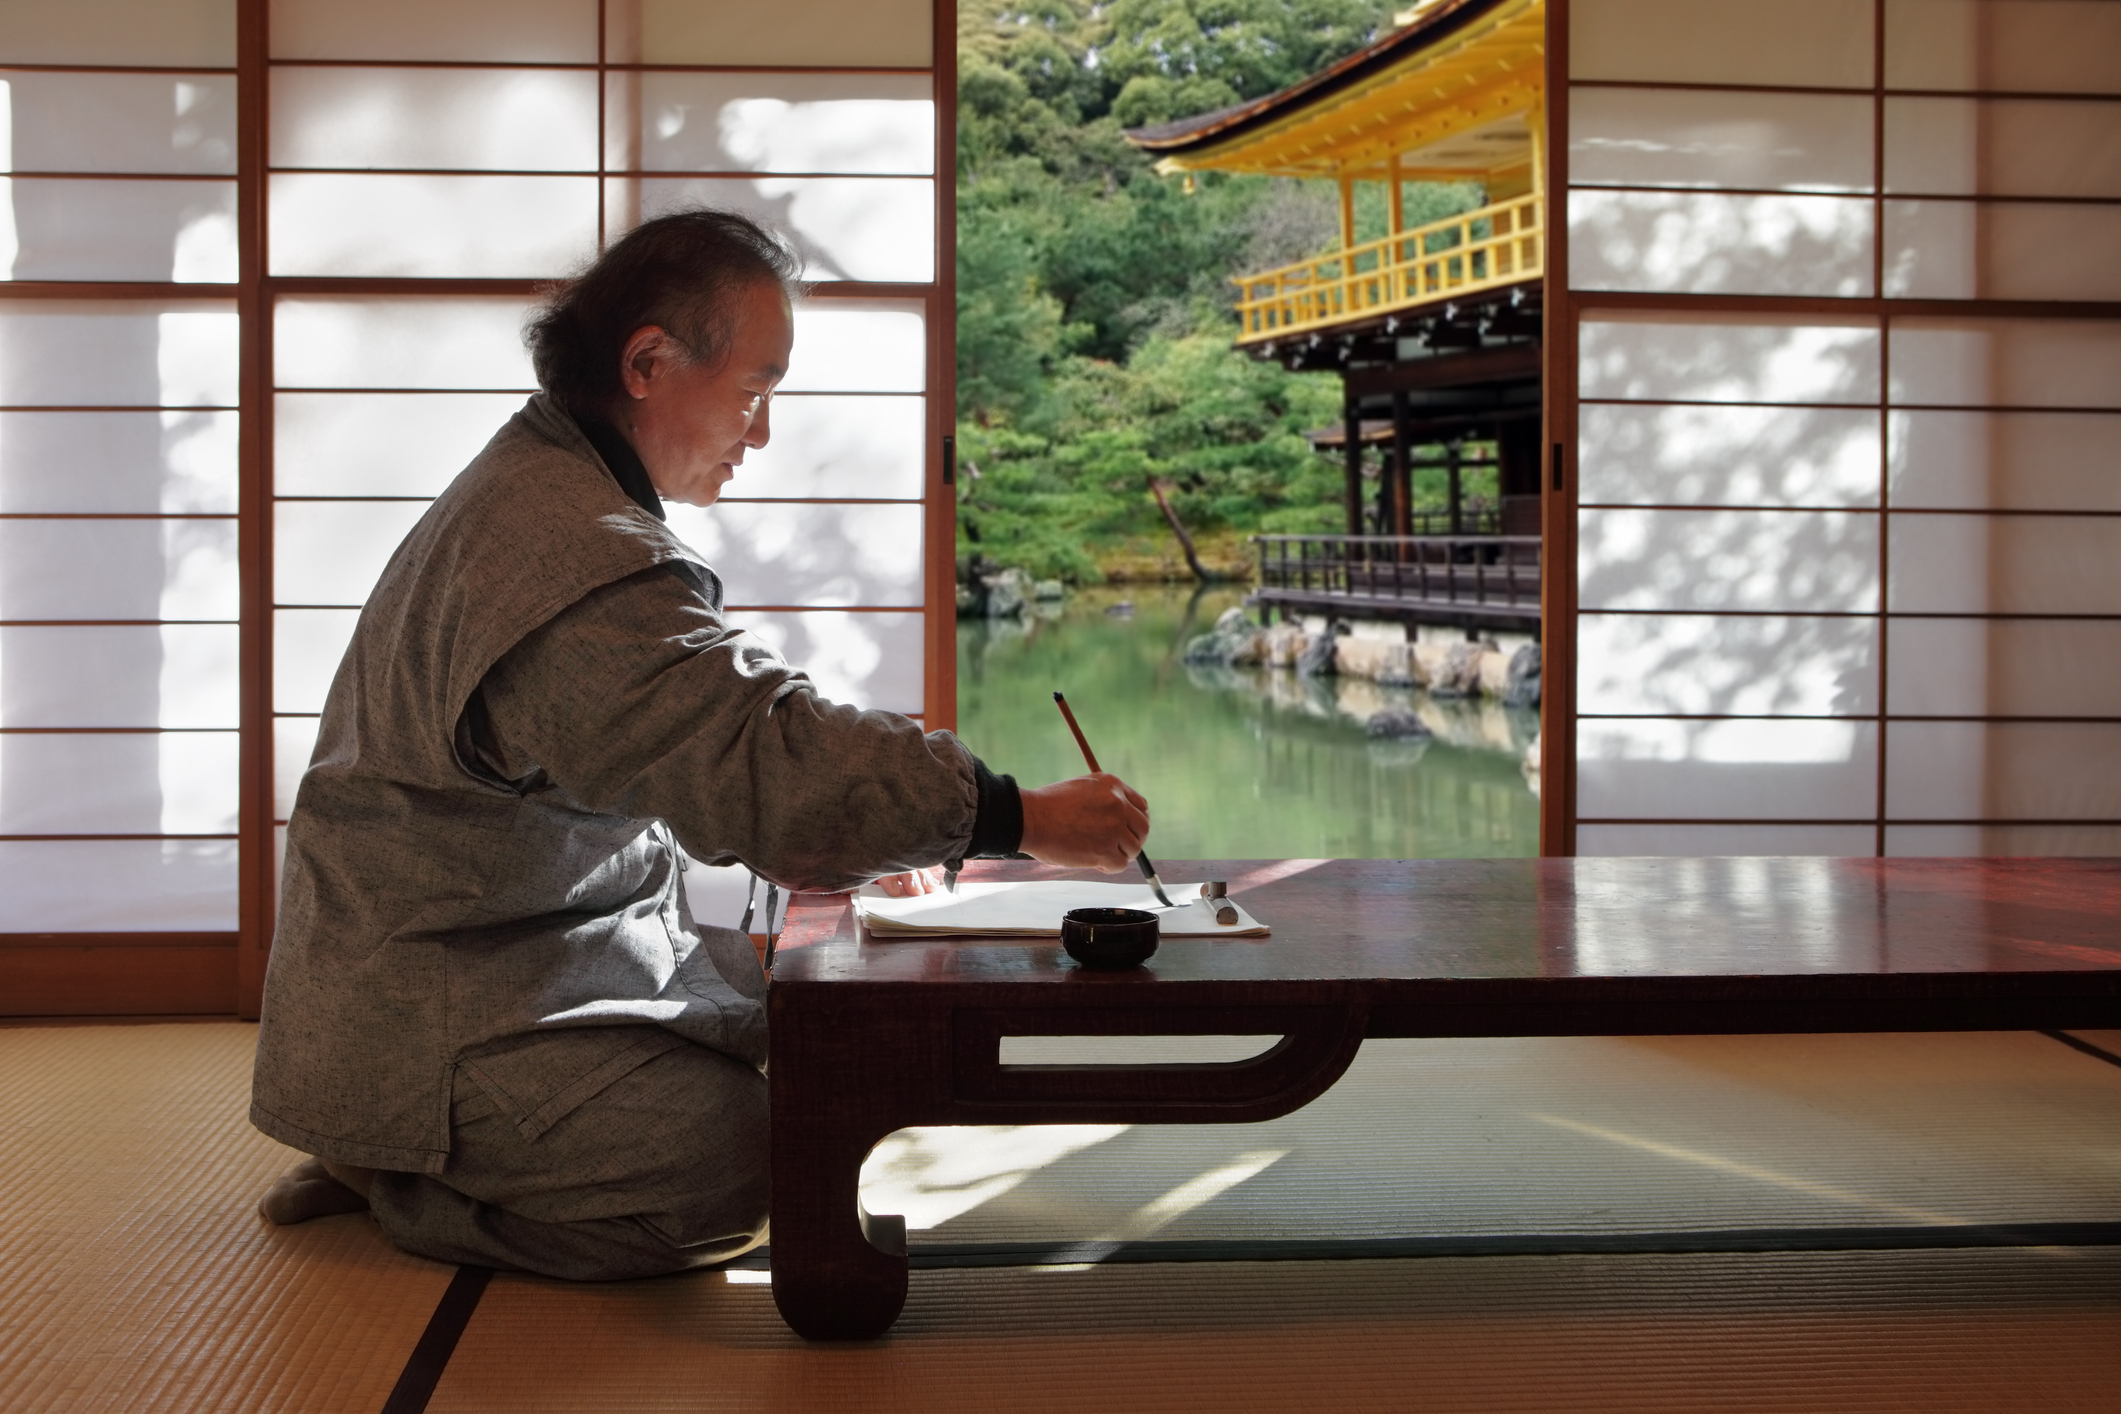 Traditional Japanese room with man sitting and brush painting.